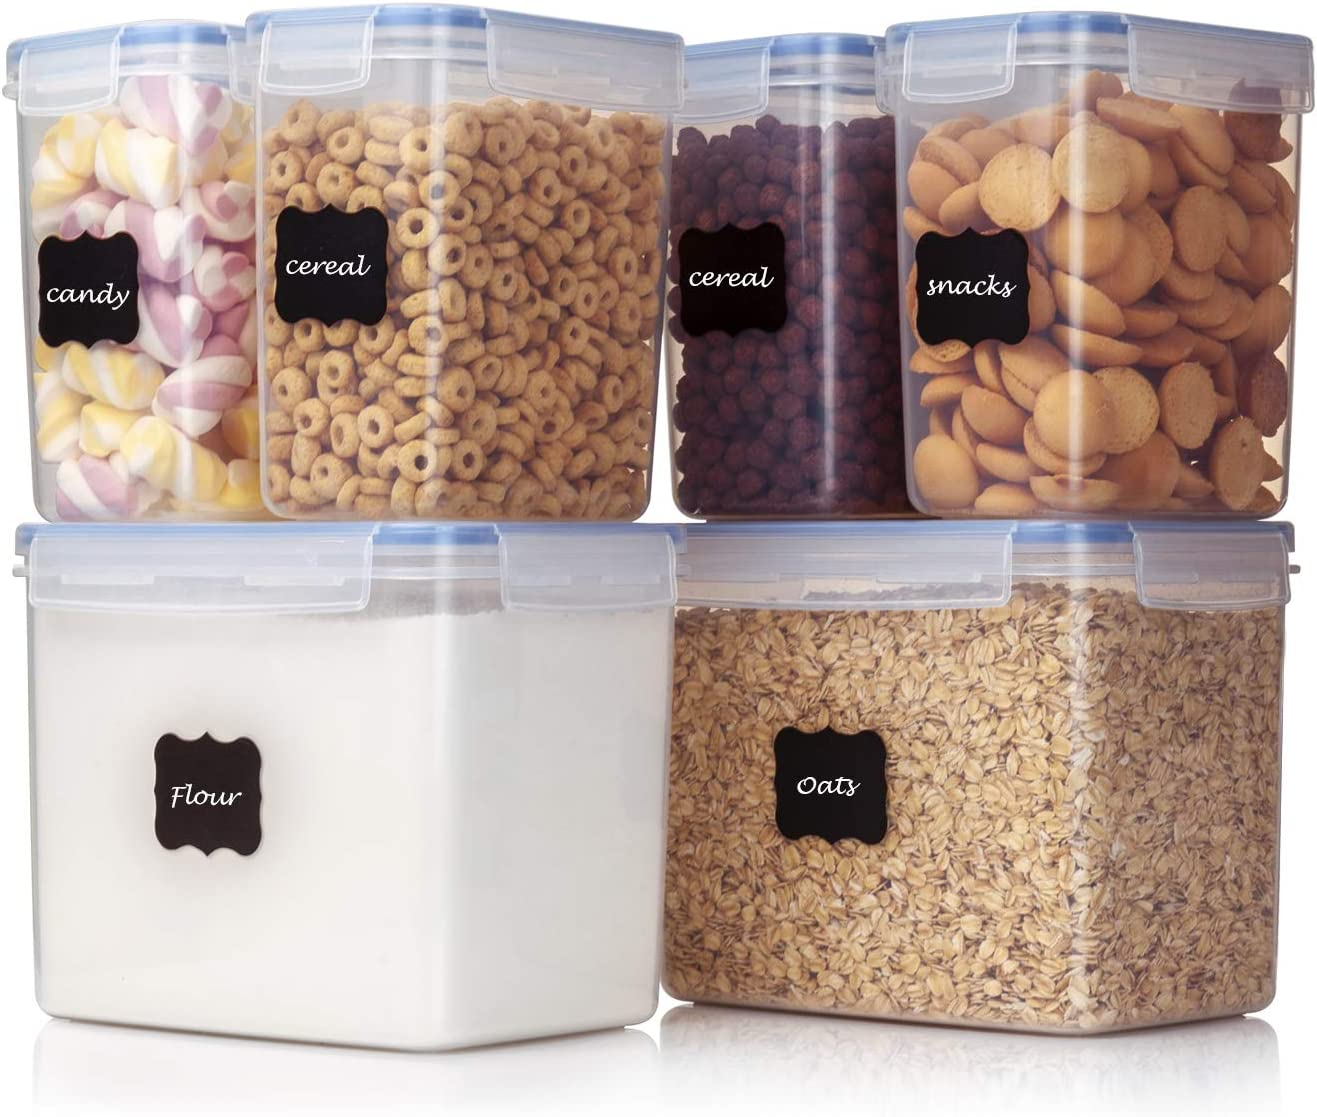 Vtopmart Airtight Food Storage Containers 6 Pieces - Plastic PBA Free  Kitchen Pantry Storage Containers for Sugar,Flour and Baking Supplies - ...